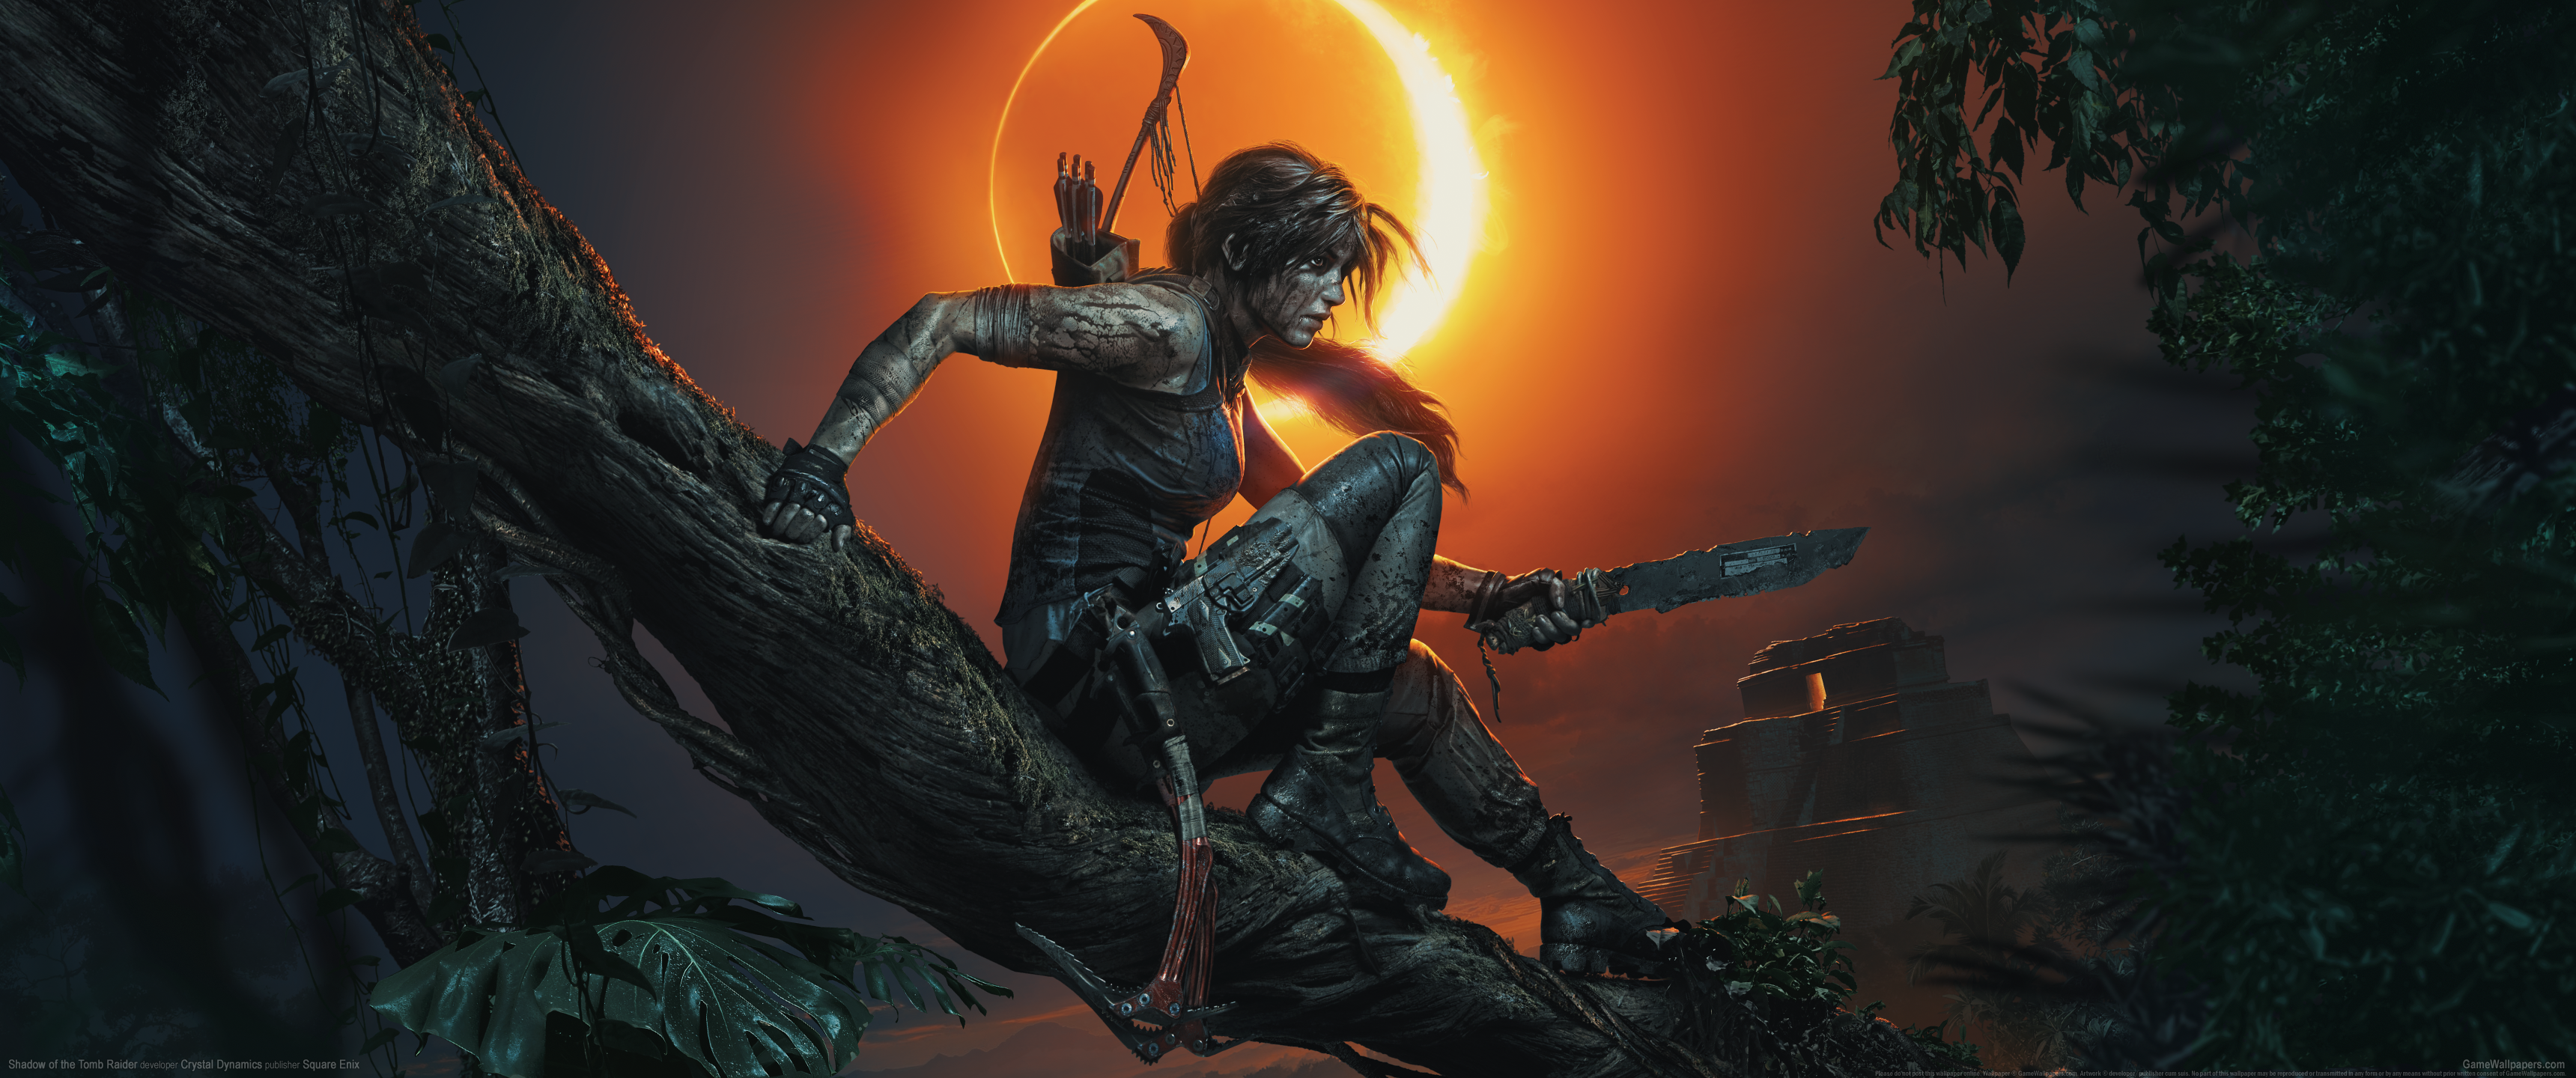 Shadow Of The Tomb Raider Wallpapers Top Free Shadow Of The Tomb